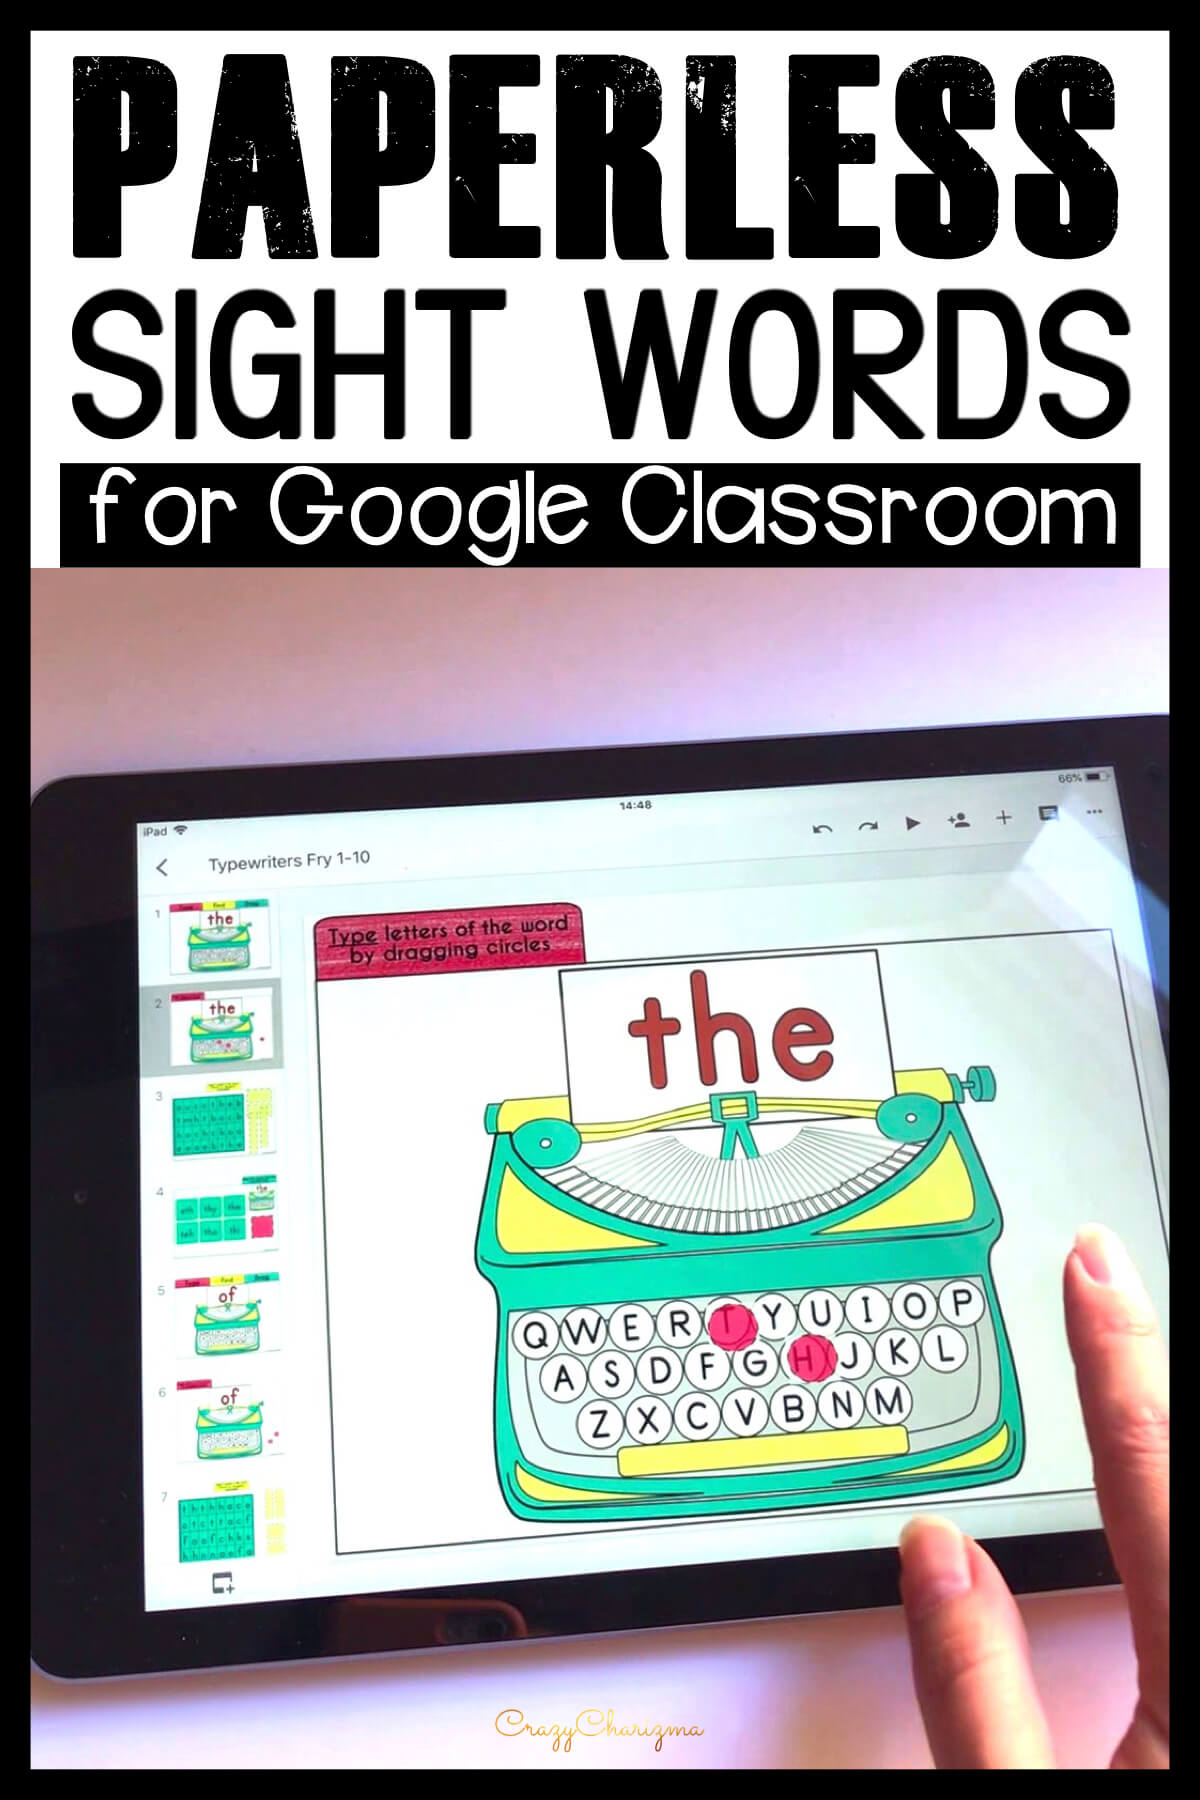 Google Classroom Activities for Kindergarten | Sight Words Games: Looking for fun Google Classroom activities for kindergarten to practice sight words? Get these games and engage kids with sight words.